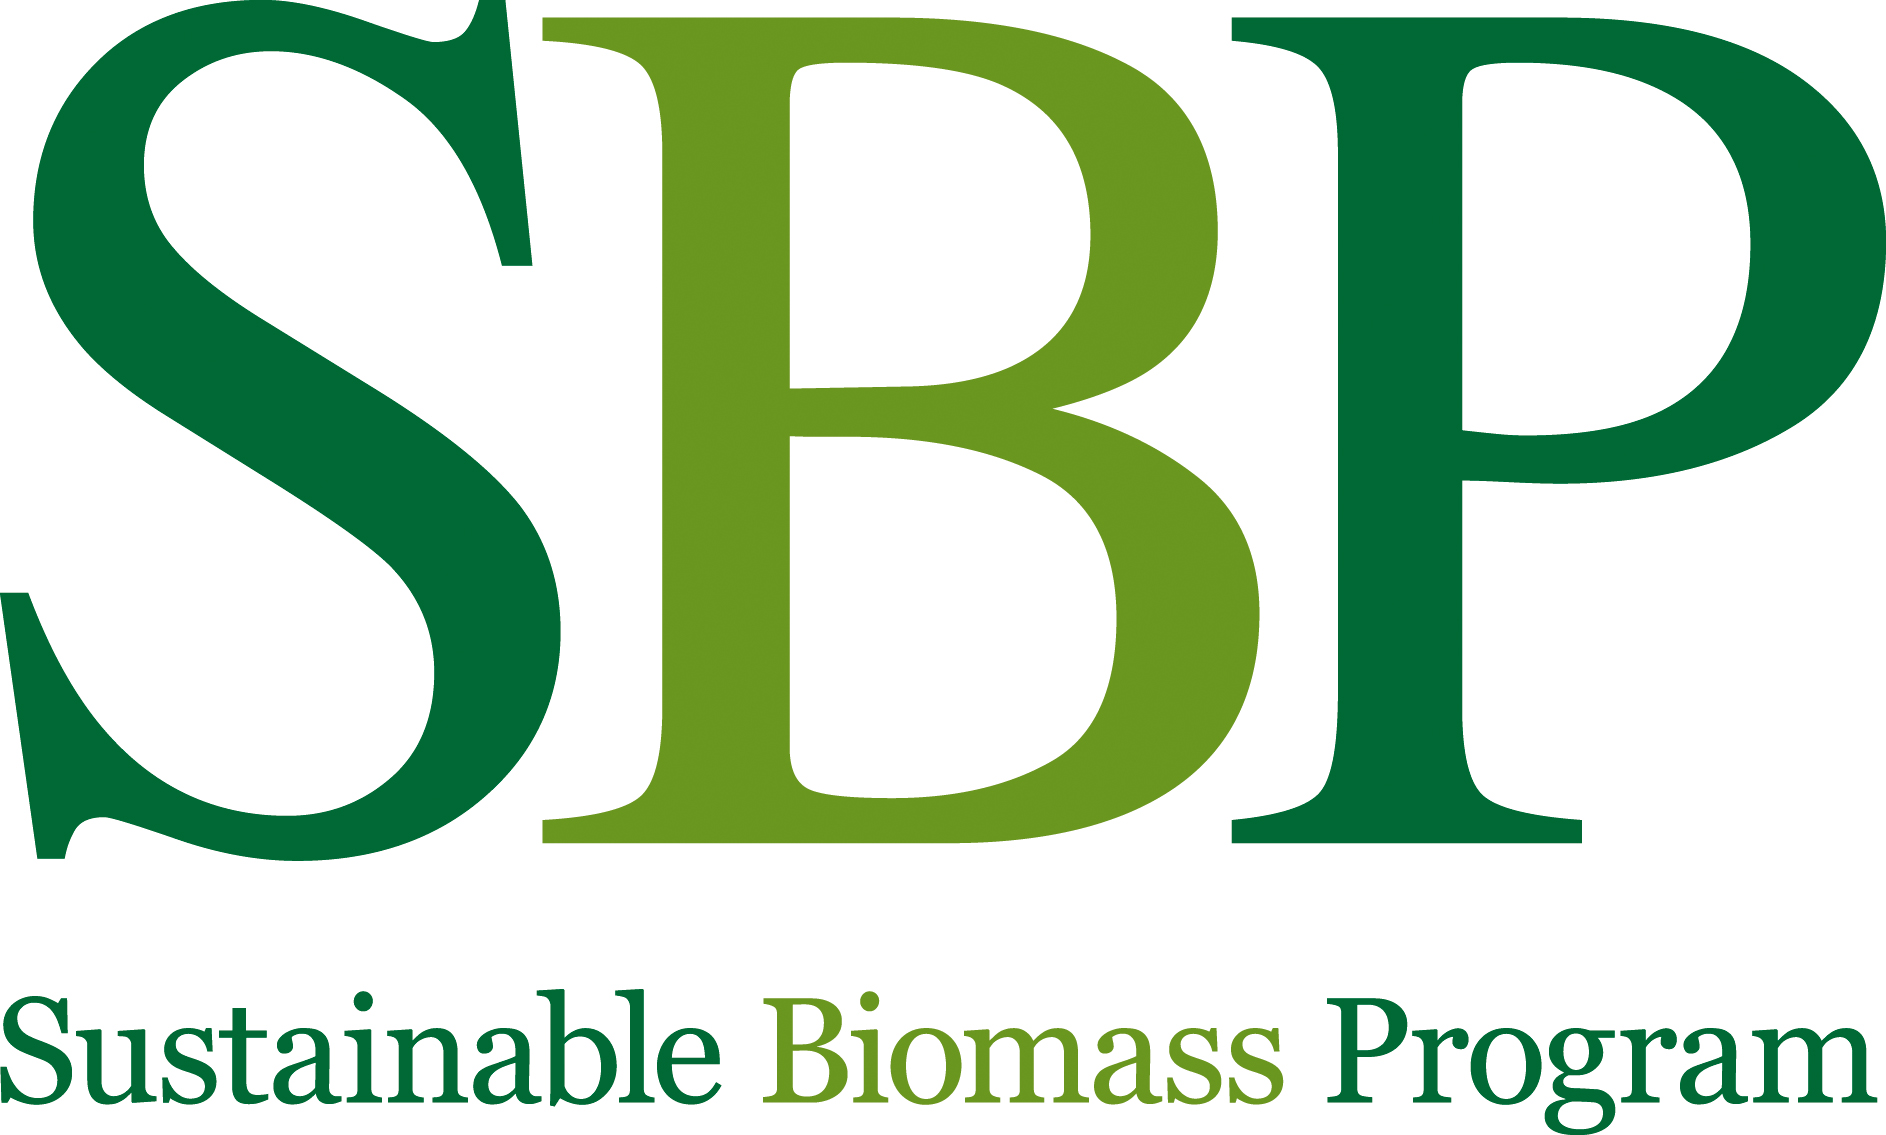 Sustainable Biomass Program logo © Sustainable Biomass Program